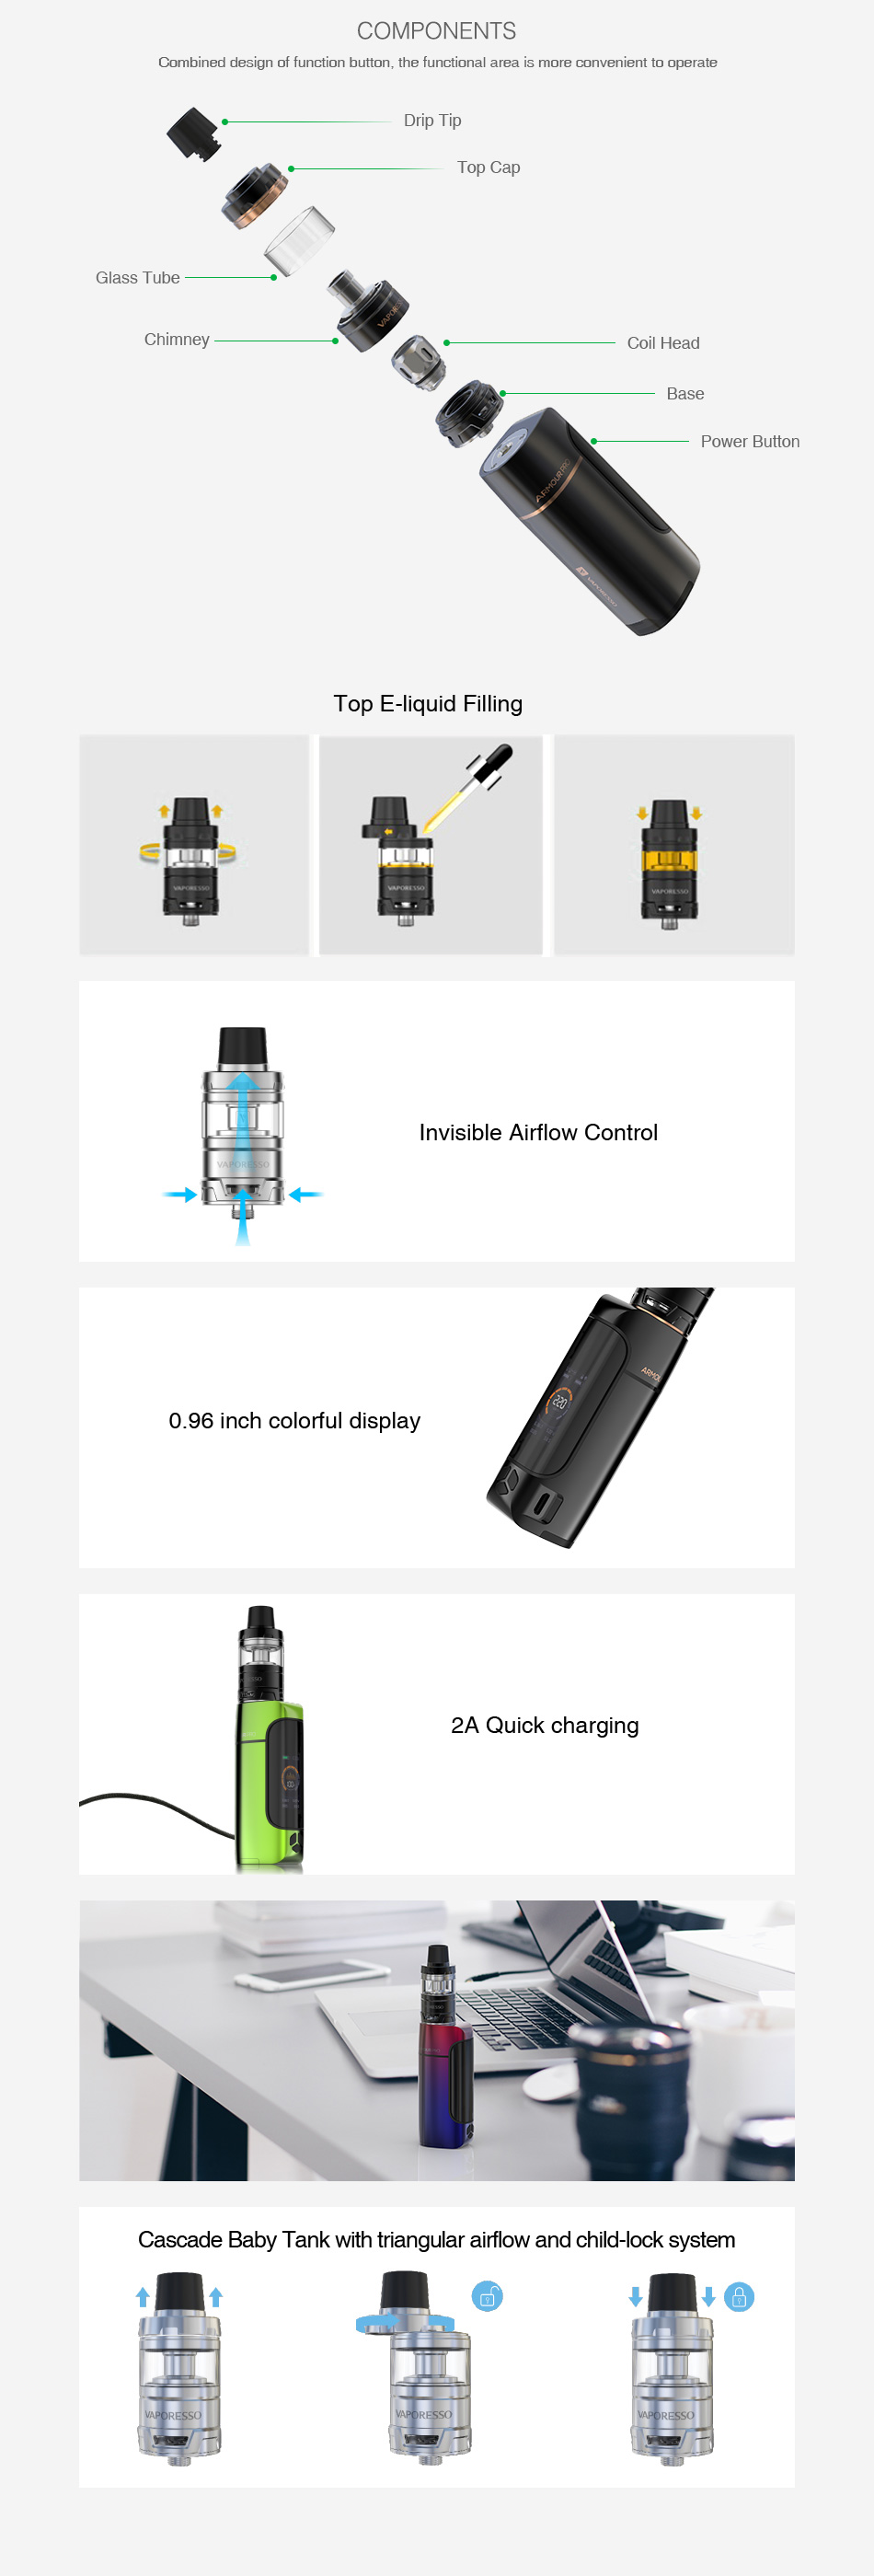 Vaporesso Armour Pro 100W TC Kit with Cascade Baby - w/o Battery